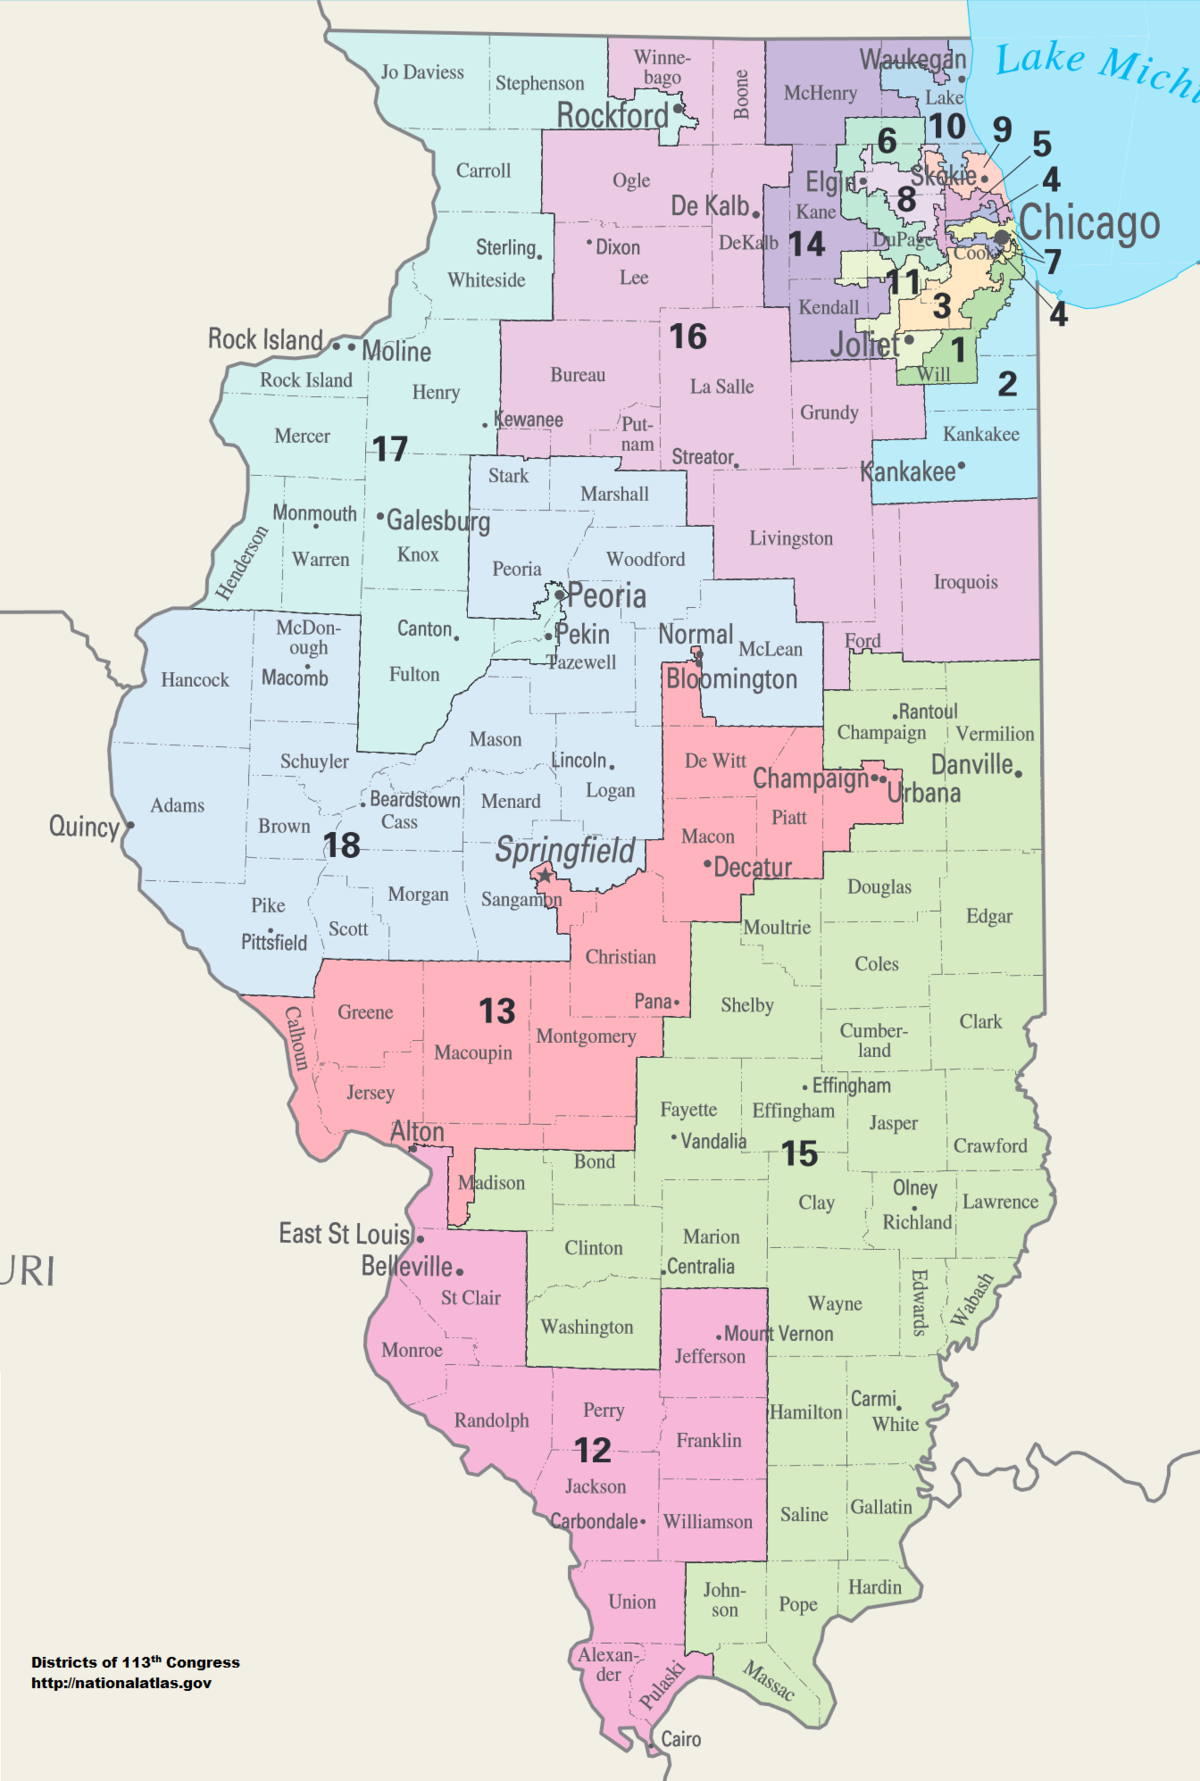 Palatine Illinois Map.Illinois Congressional Districts Wikipedia